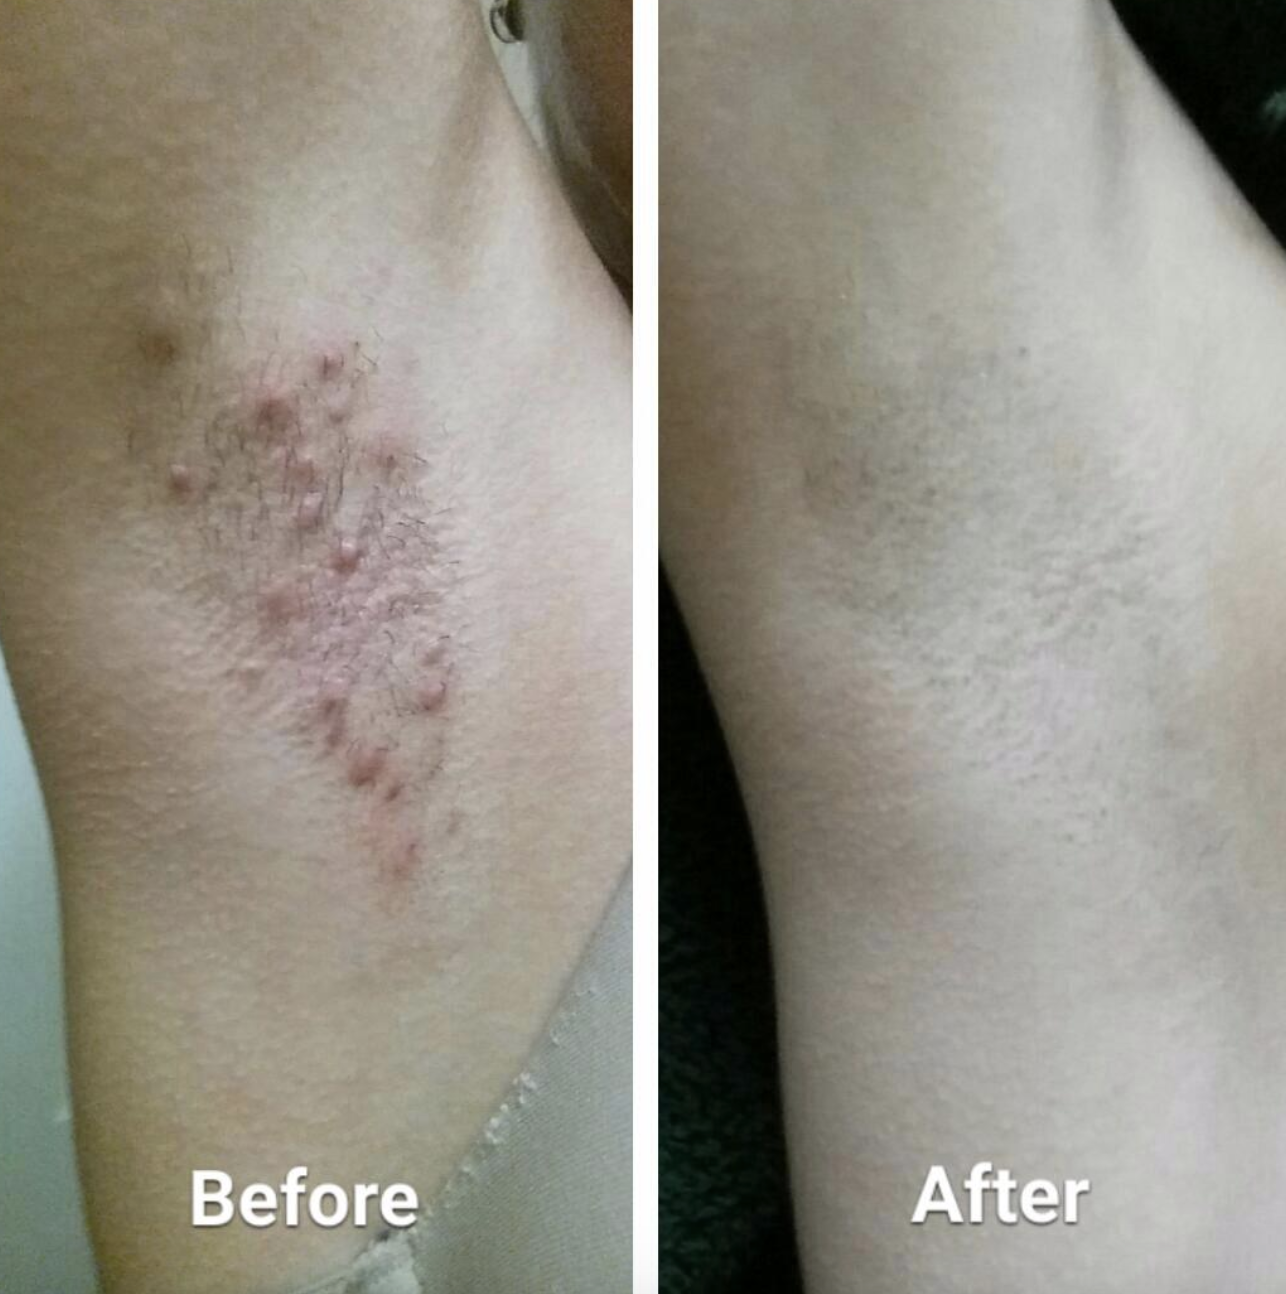 A reviewer's before-and-after photo of their armpit. The first photo shows large red bumps and irritation on an armpit that hasn't been shaved and the second photo shows a freshly shaved armpit without any bumps or redness.